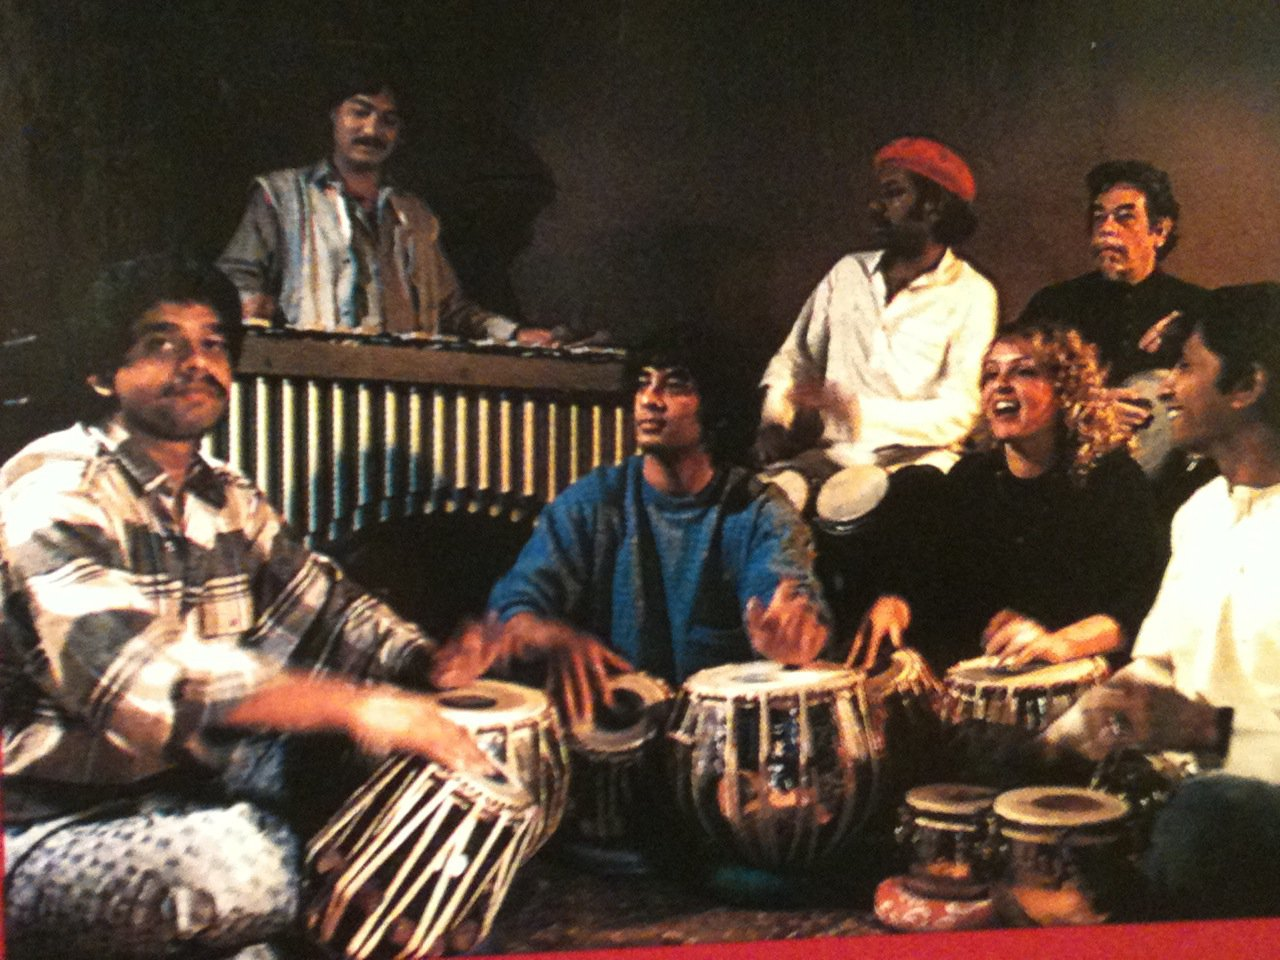 Zakir Hussain and the Rhythm Experience, Marin County